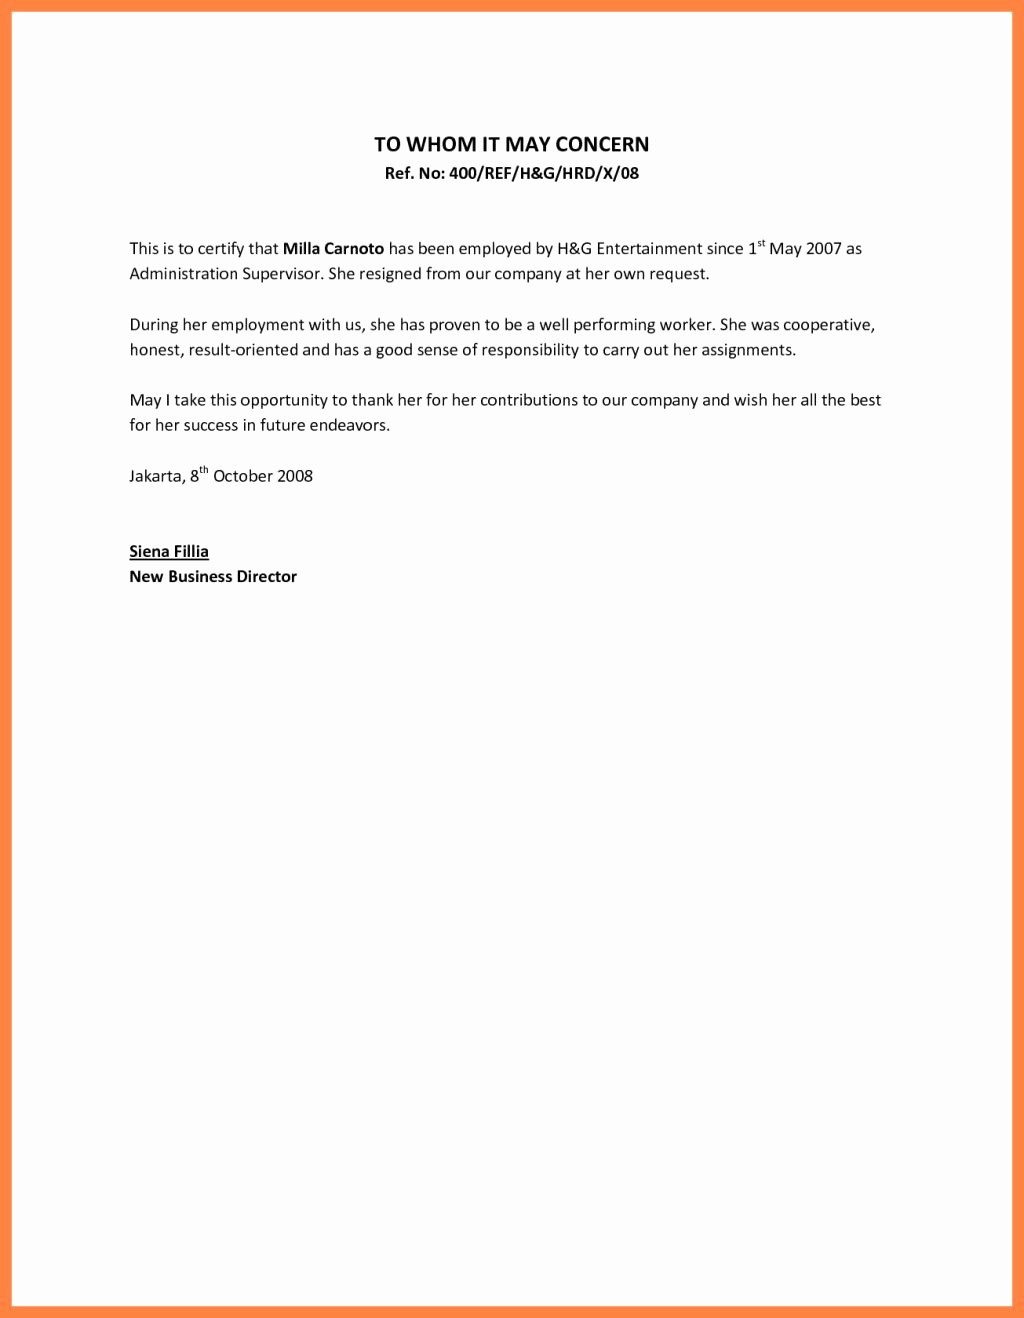 Samples Of Employee Reference Letters Unique Nice Employee Reference Letter Sample – Letter format Writing